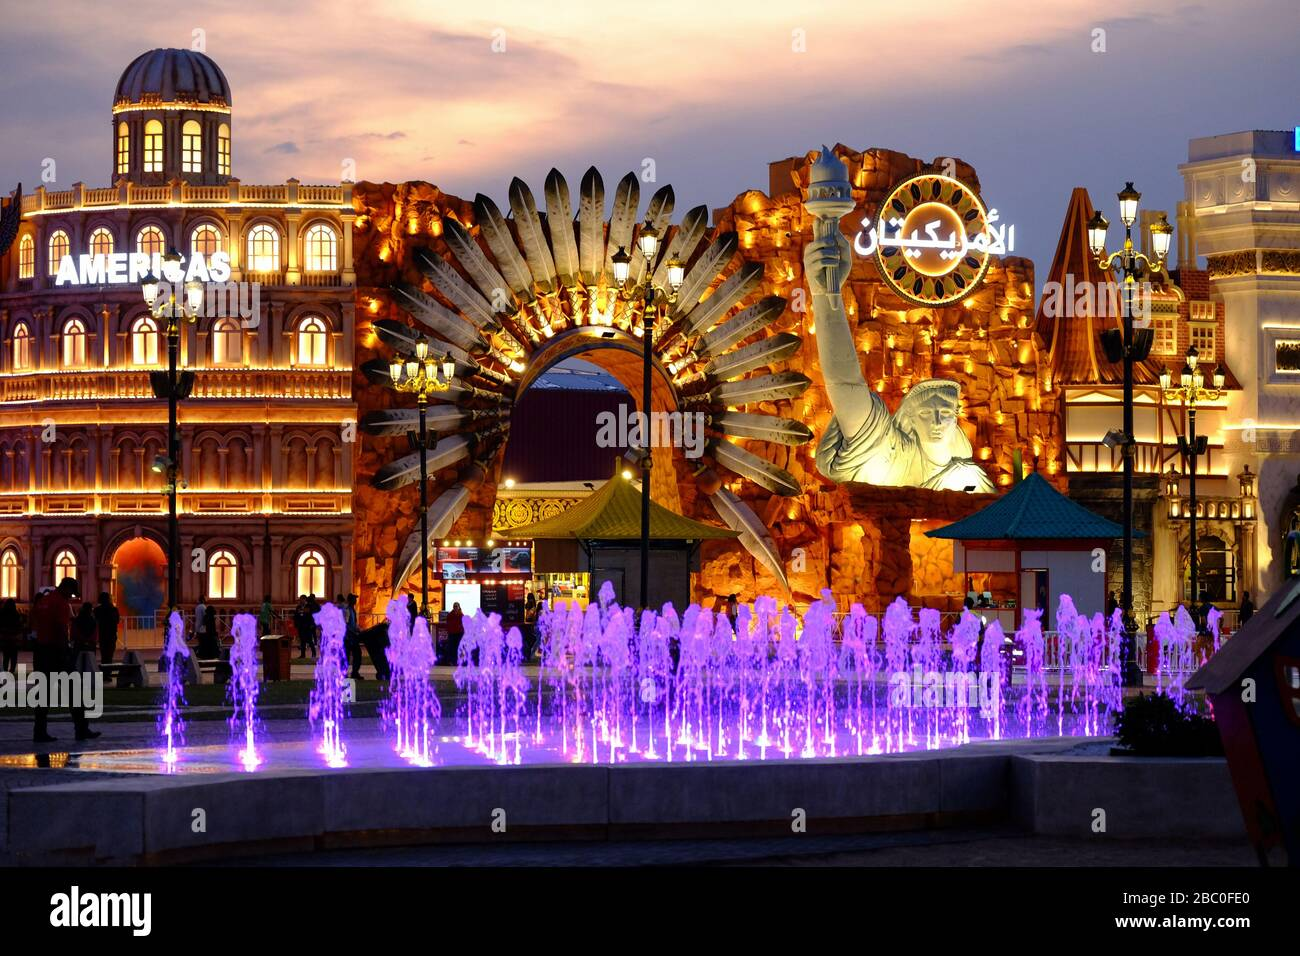 Night time shot of the Americas section inside Global Village, Dubai, UAE. Global Village combines cultures of 90 countries across the world. Stock Photo